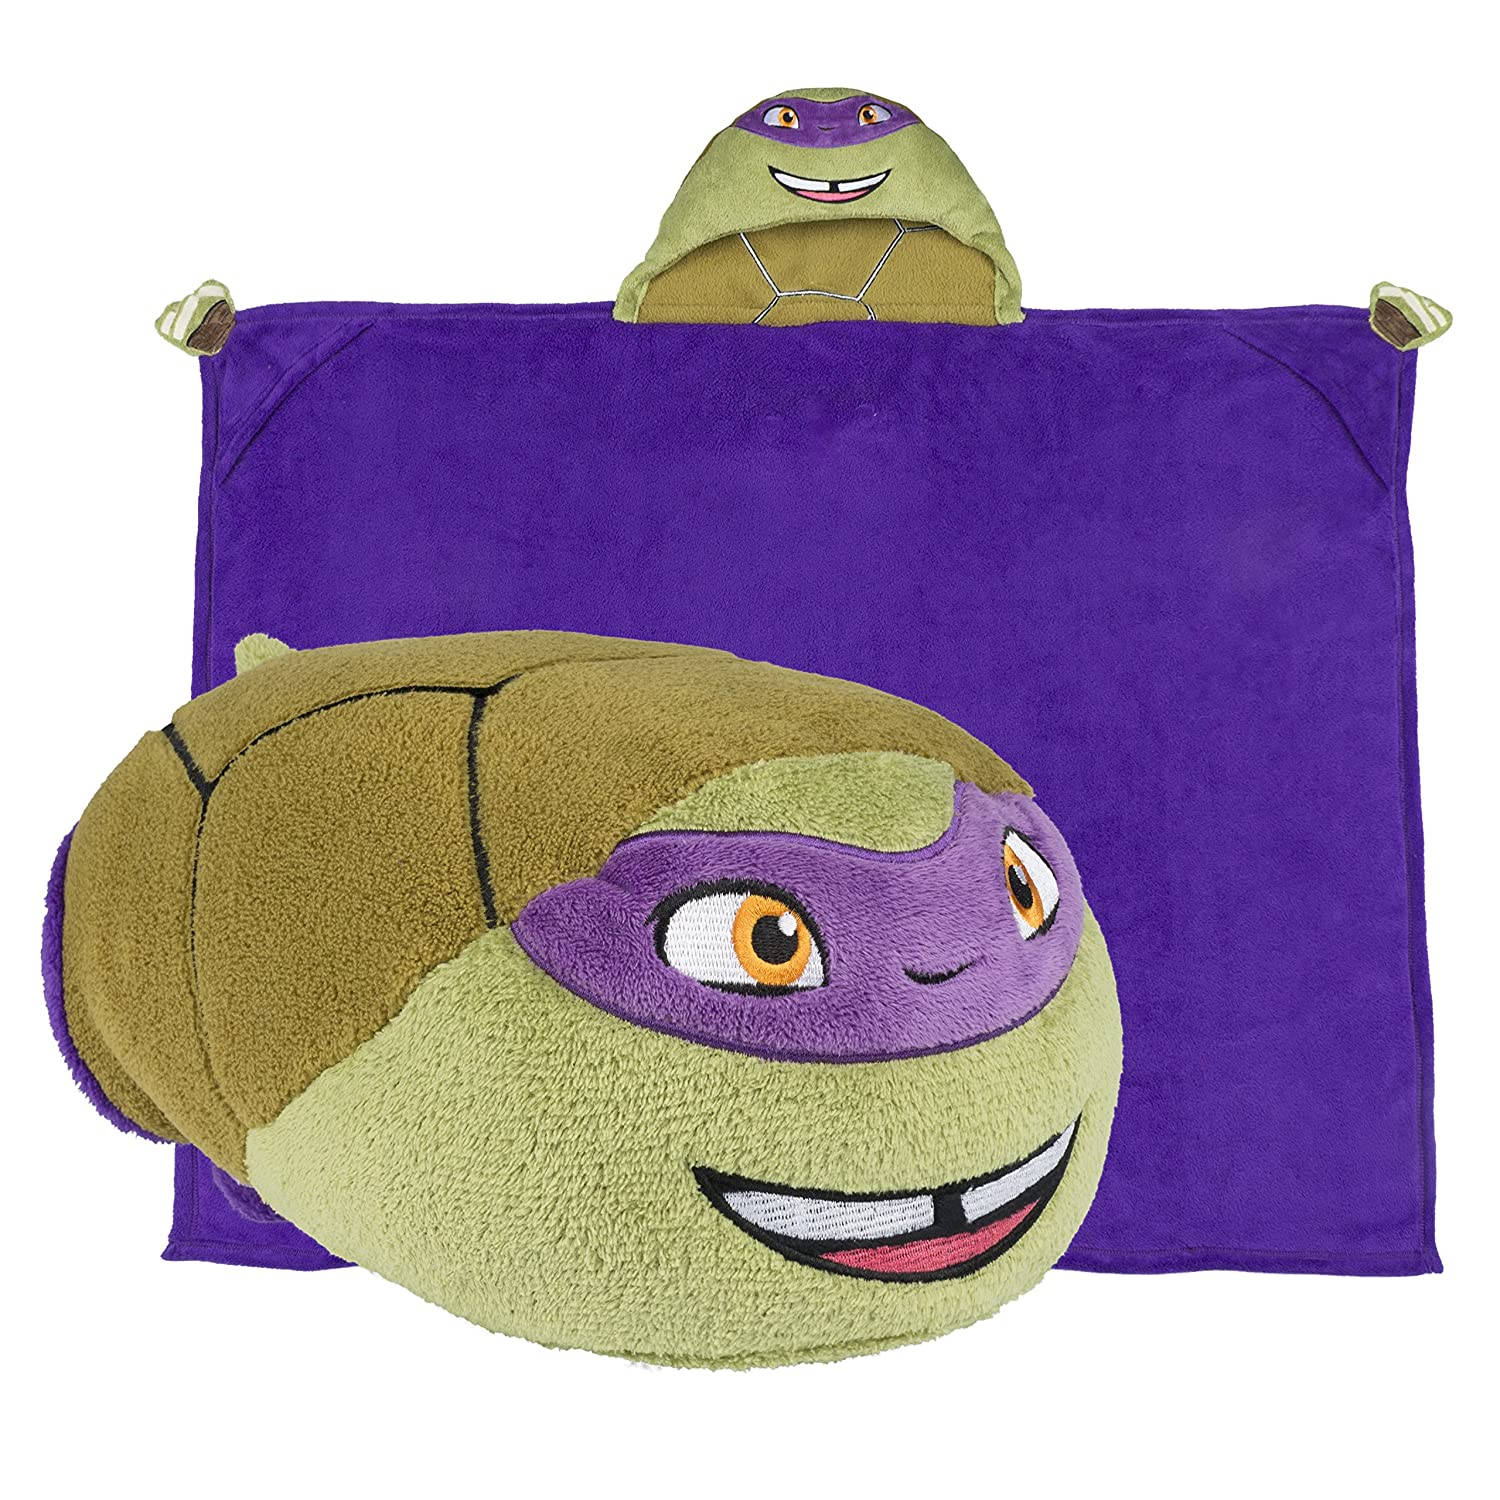 Stuffed Animal Blanket & Pillow; Teenage Mutant Ninja Turtles (TMNT), Donatello